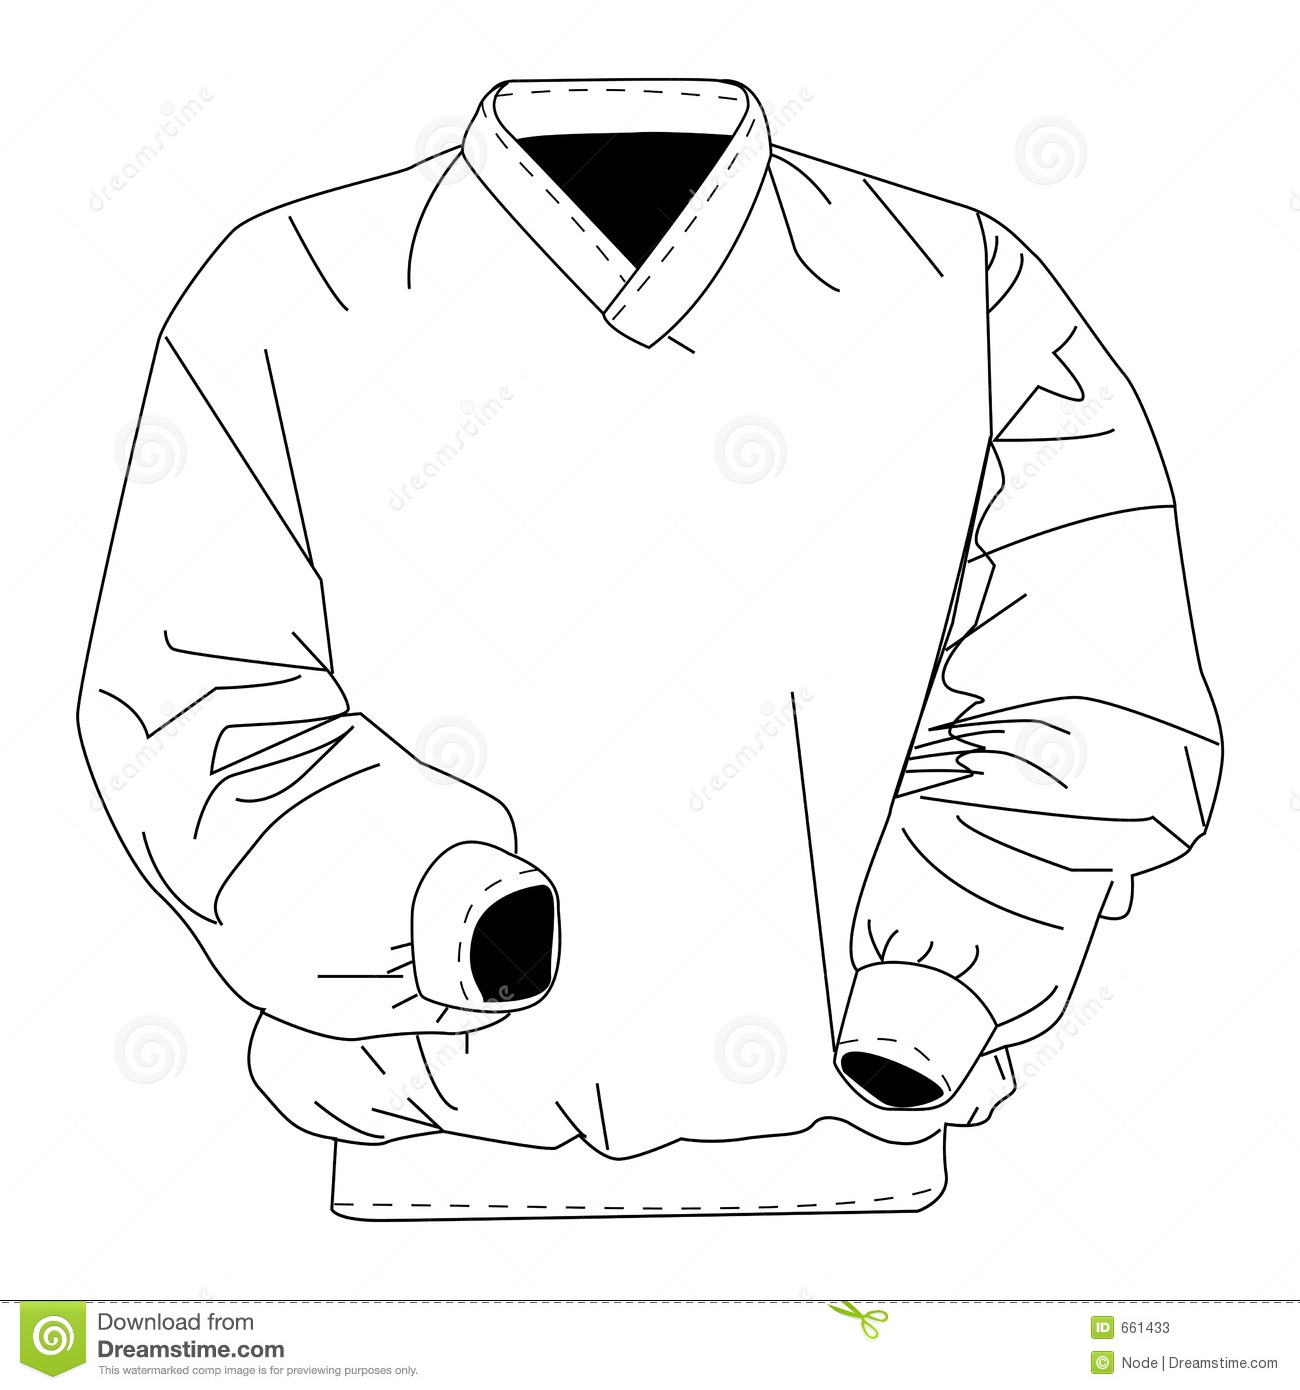 Windbreaker Stock Illustrations – 64 Windbreaker Stock